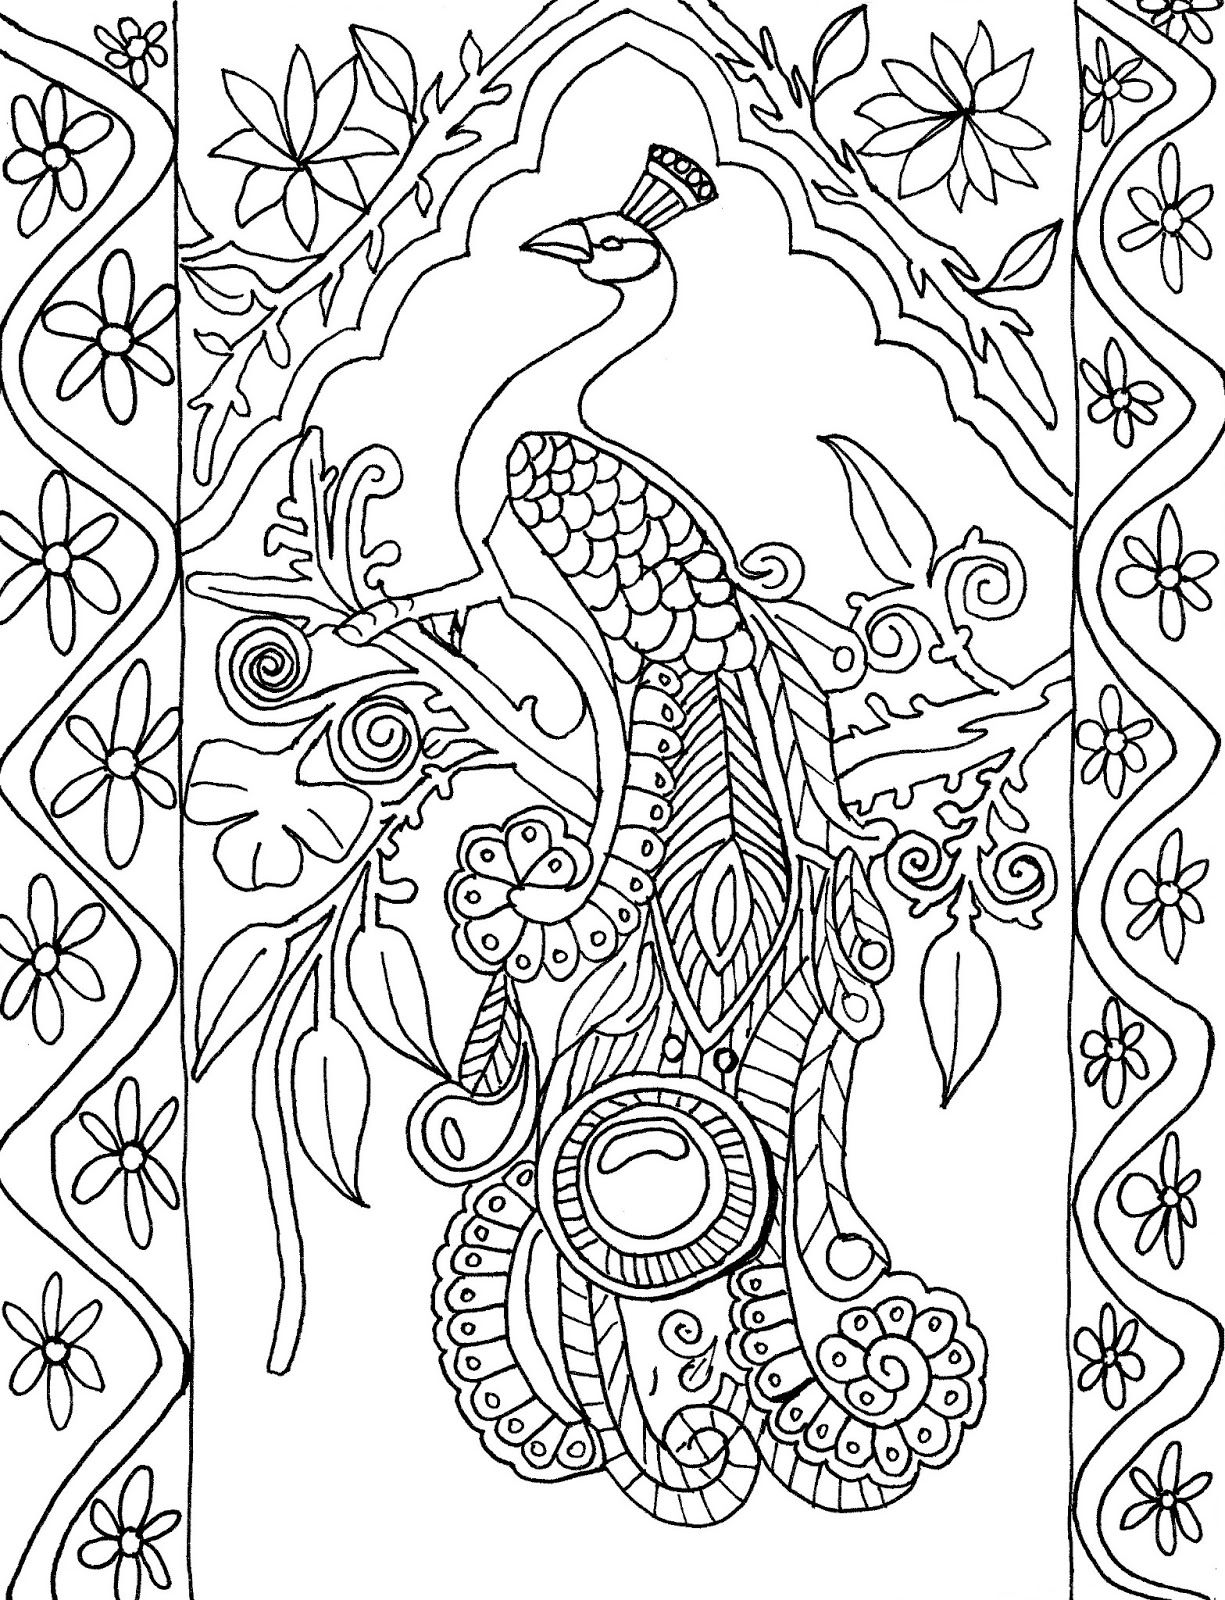 The printable peacock coloring pages can be colored by so